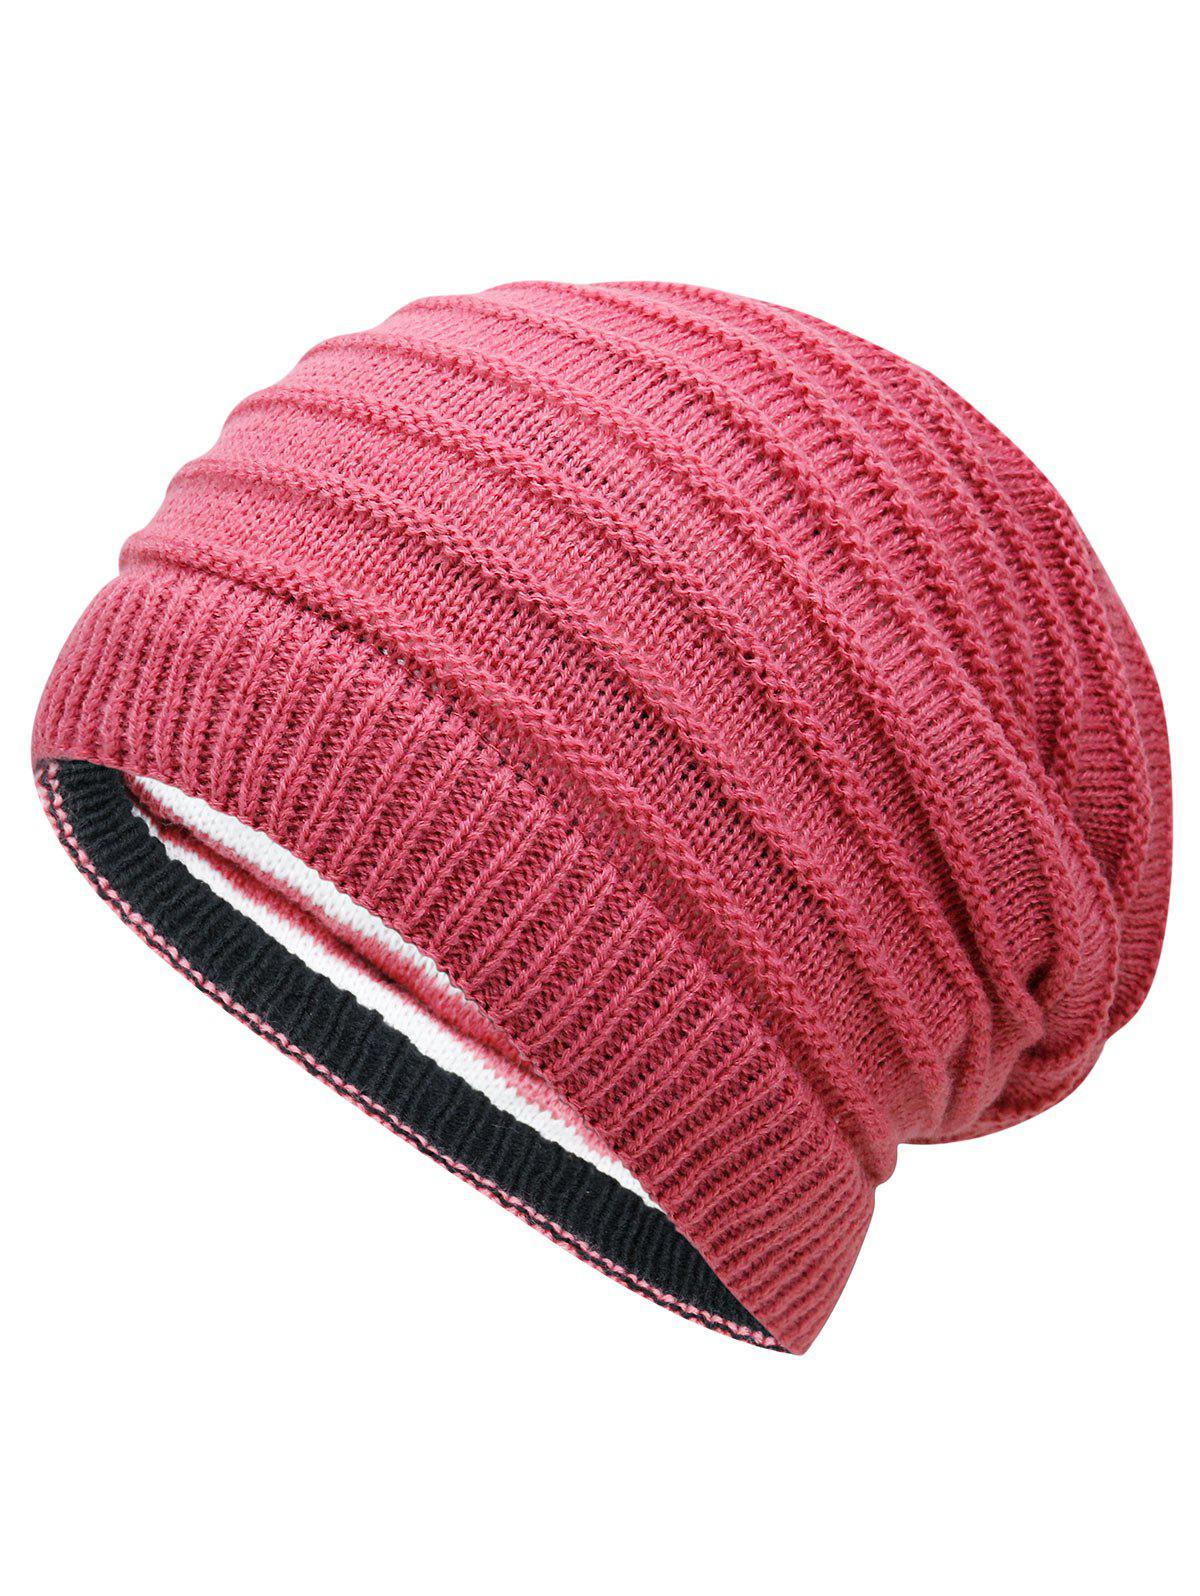 Open Top Decorated Reversible Crochet Knitted Beanie - WATERMELON RED